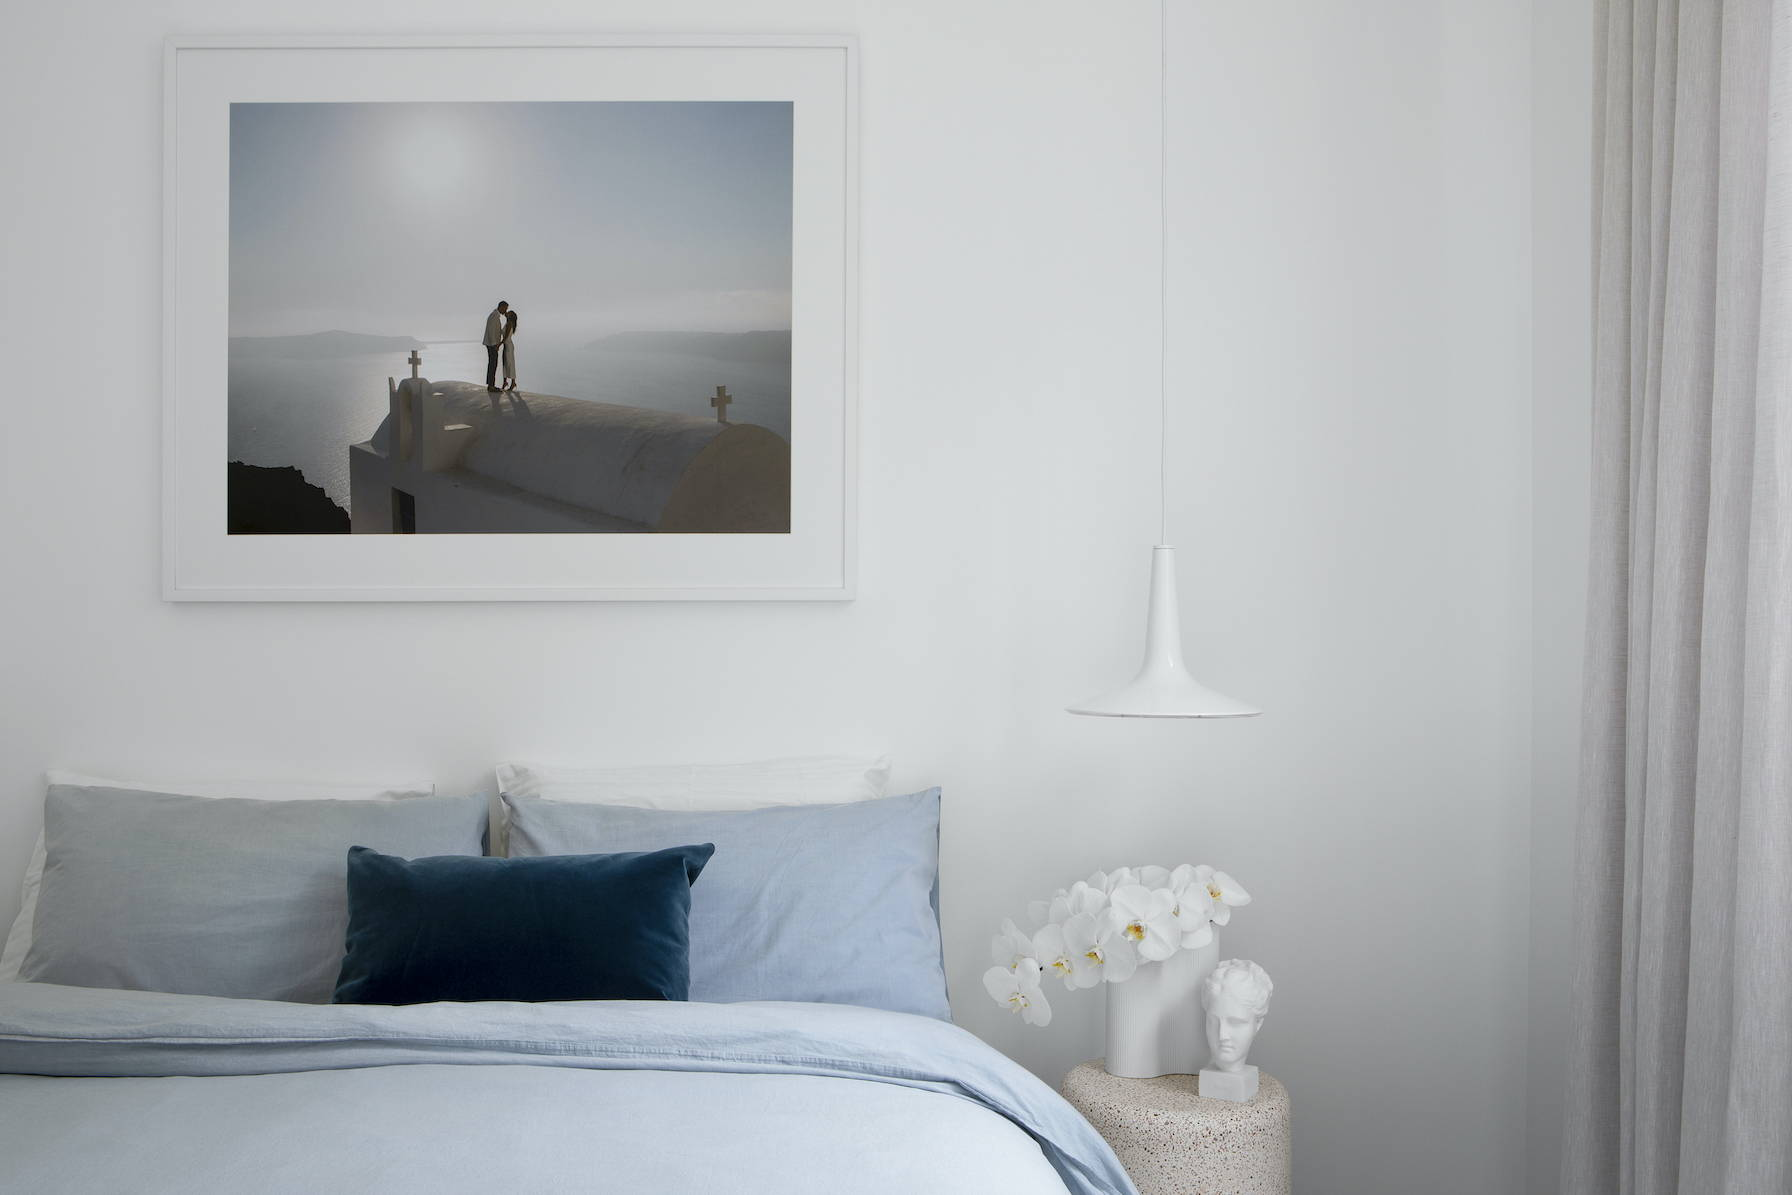 Wedding photography framed and hanging above a beautiful bedroom setting